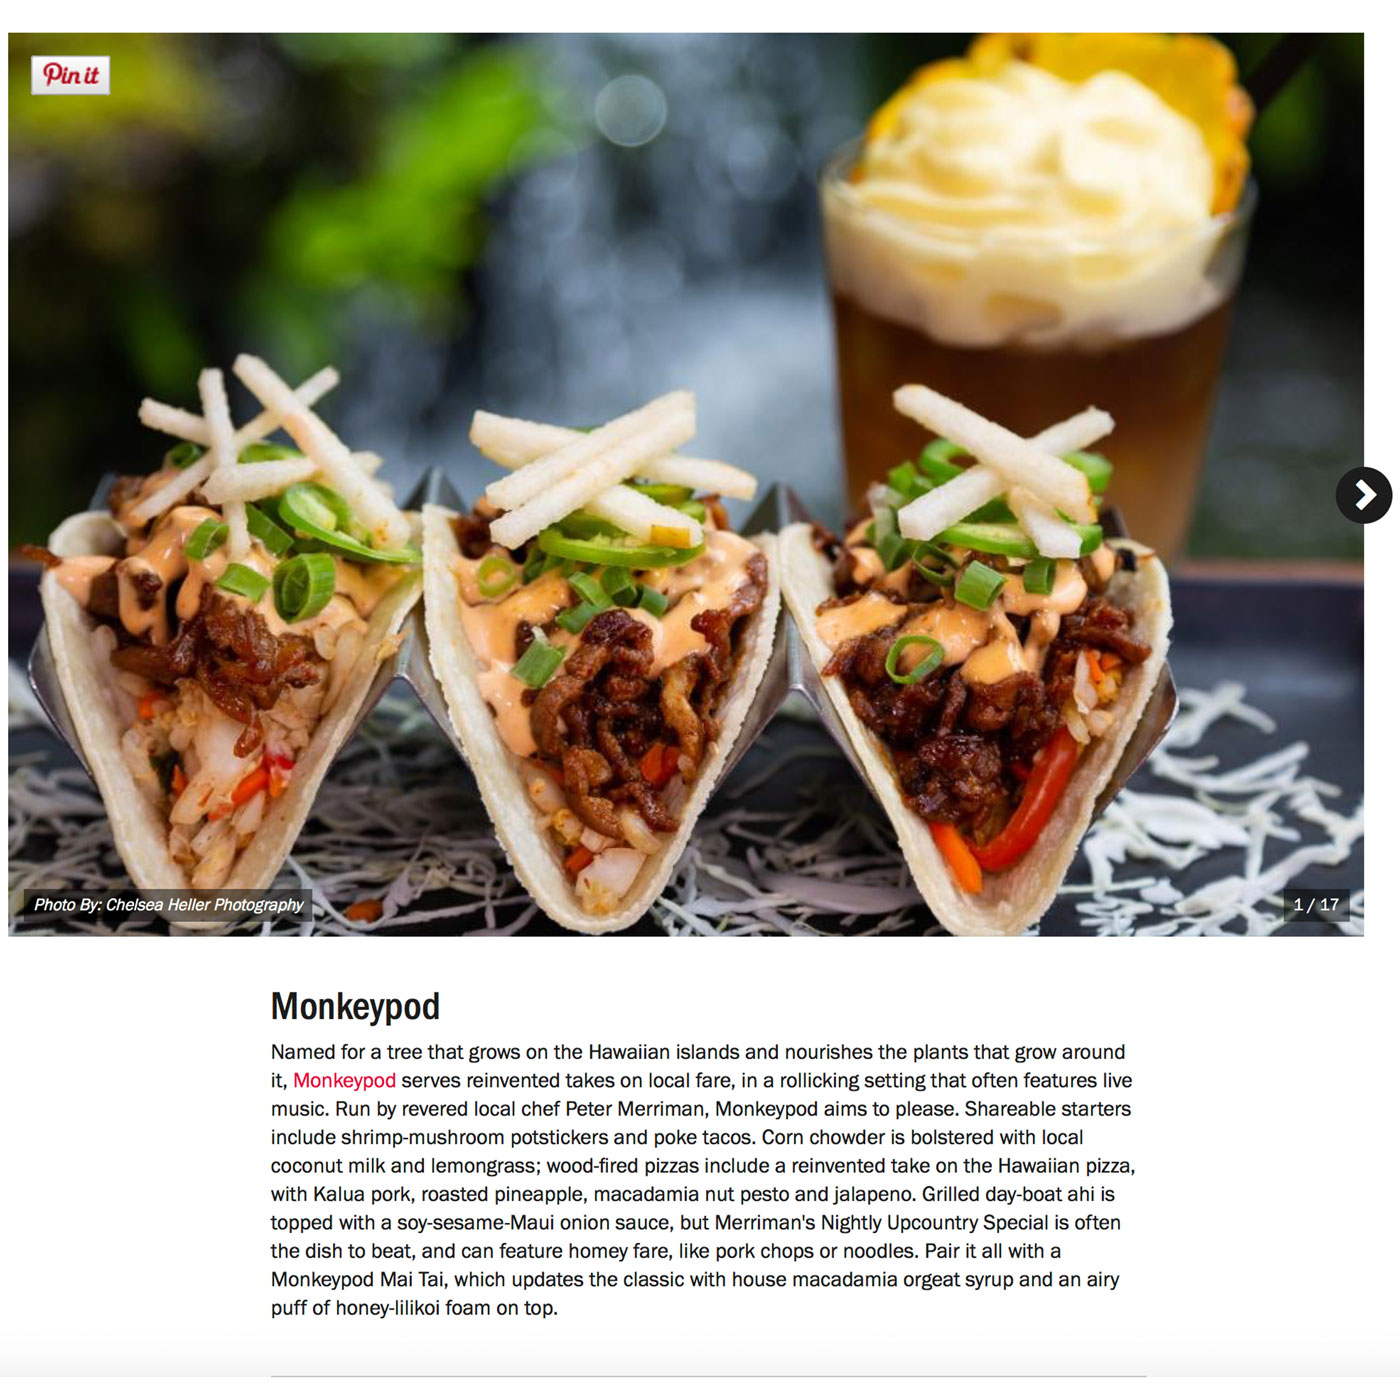 "Screenshot from Food Network's Guide to:<br><a href=""https://www.foodnetwork.com/restaurants/photos/restaurant-guide-maui"" target=""_blank"" rel=""noopener noreferrer"">""The Best Restaurants on Maui""</a> - Monkeypod.</br>"